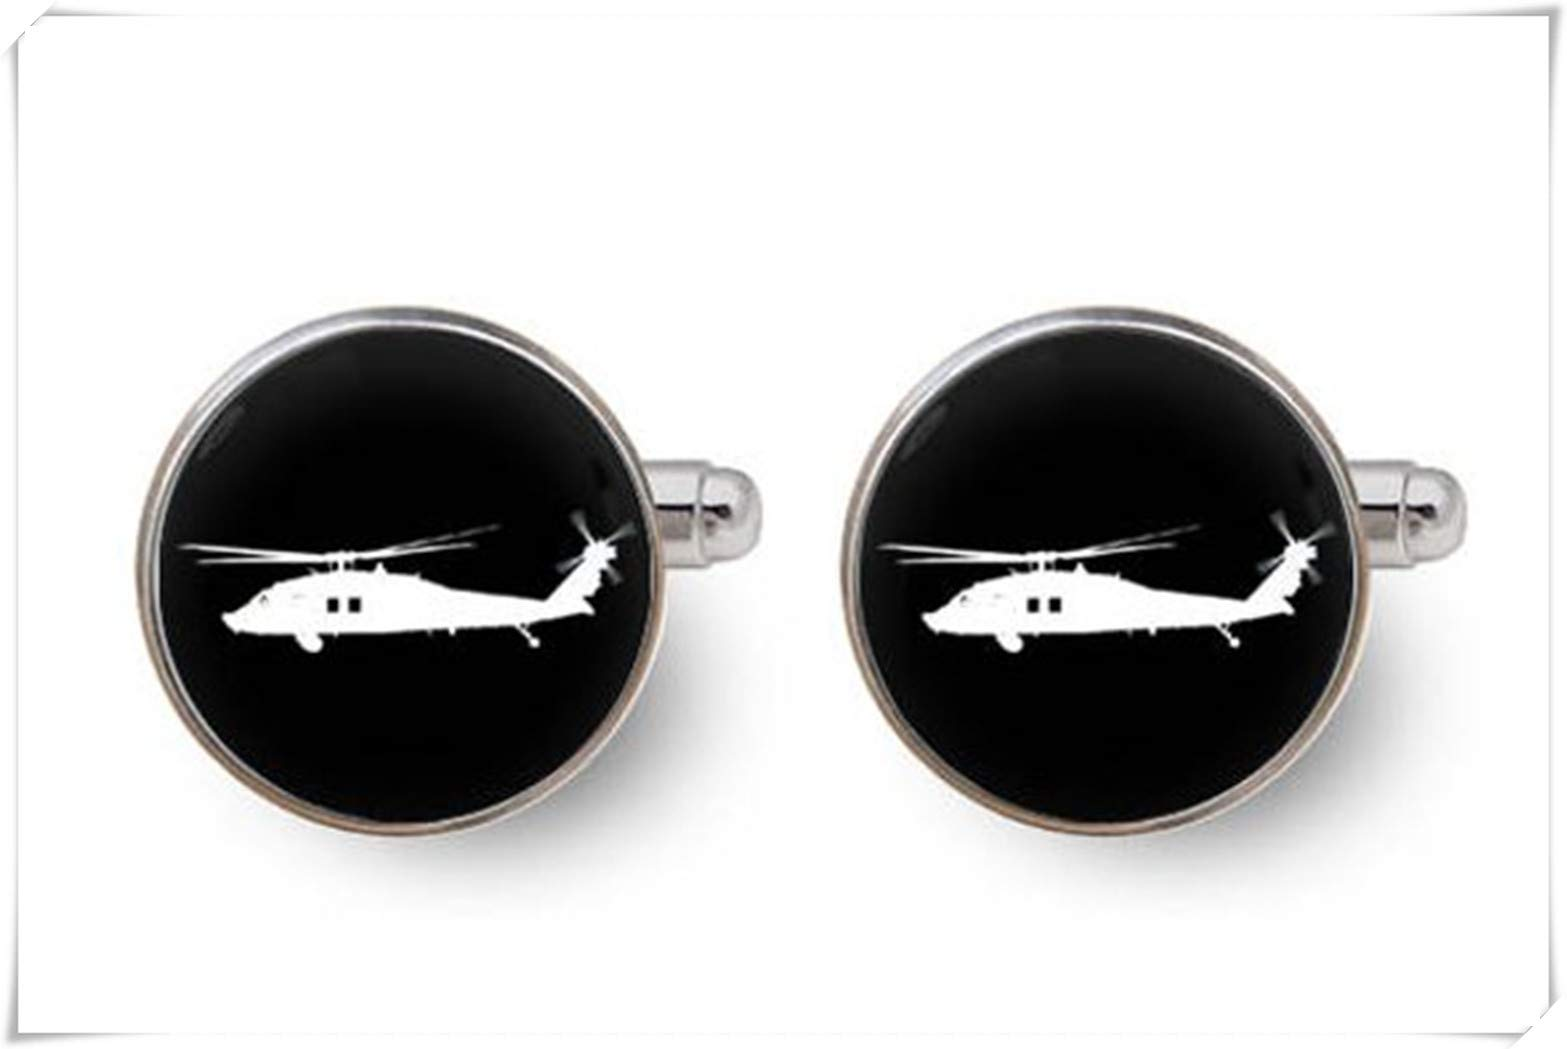 Black Hawk Helicopter Cufflinks,Dome Glass Jewelry, Pure Handmade, a Beautiful Gift